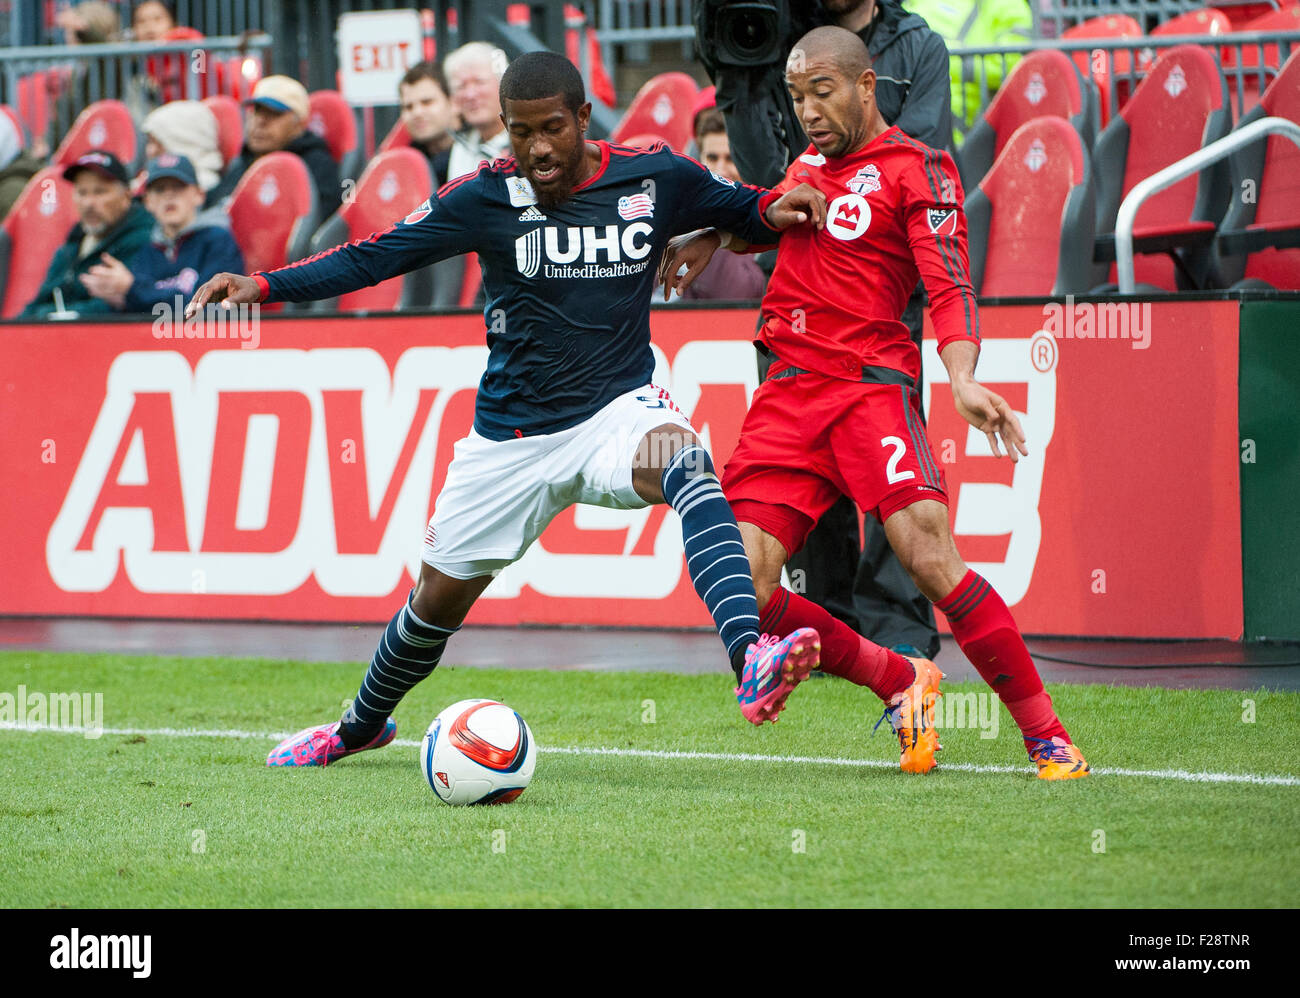 Toronto, Ontario, Canada. 13th September, 2015. New England Revolution defender Jeremy Hall (5) shields the ball - Stock Image